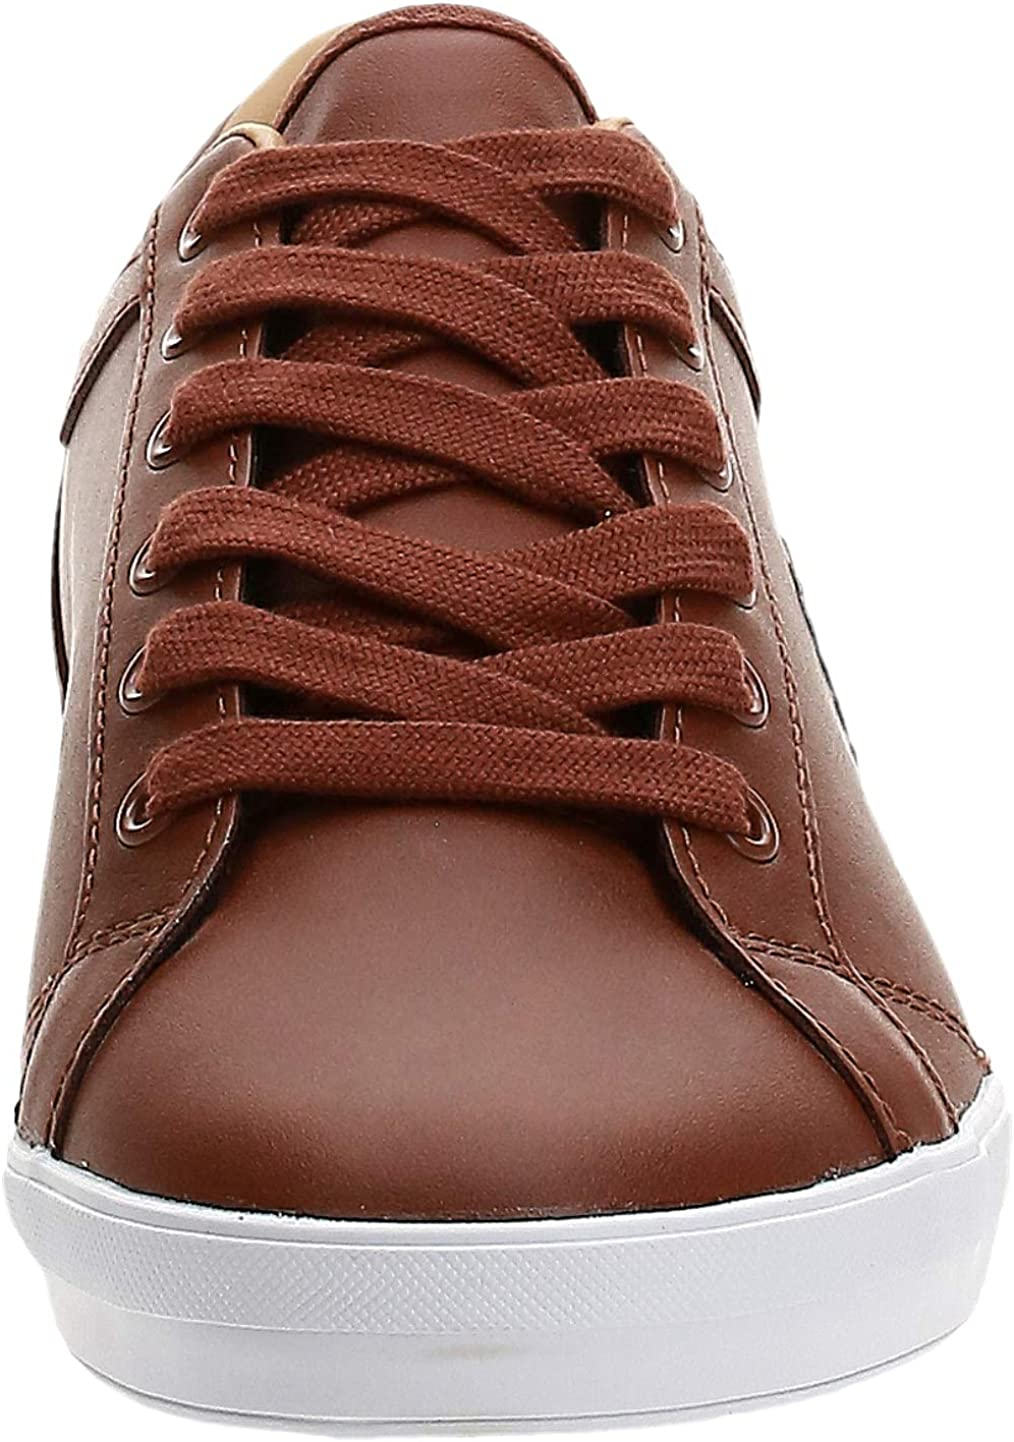 Fred Perry Baseline Leather B6158448, Turnschuhe Braun ILsk6 gXfda